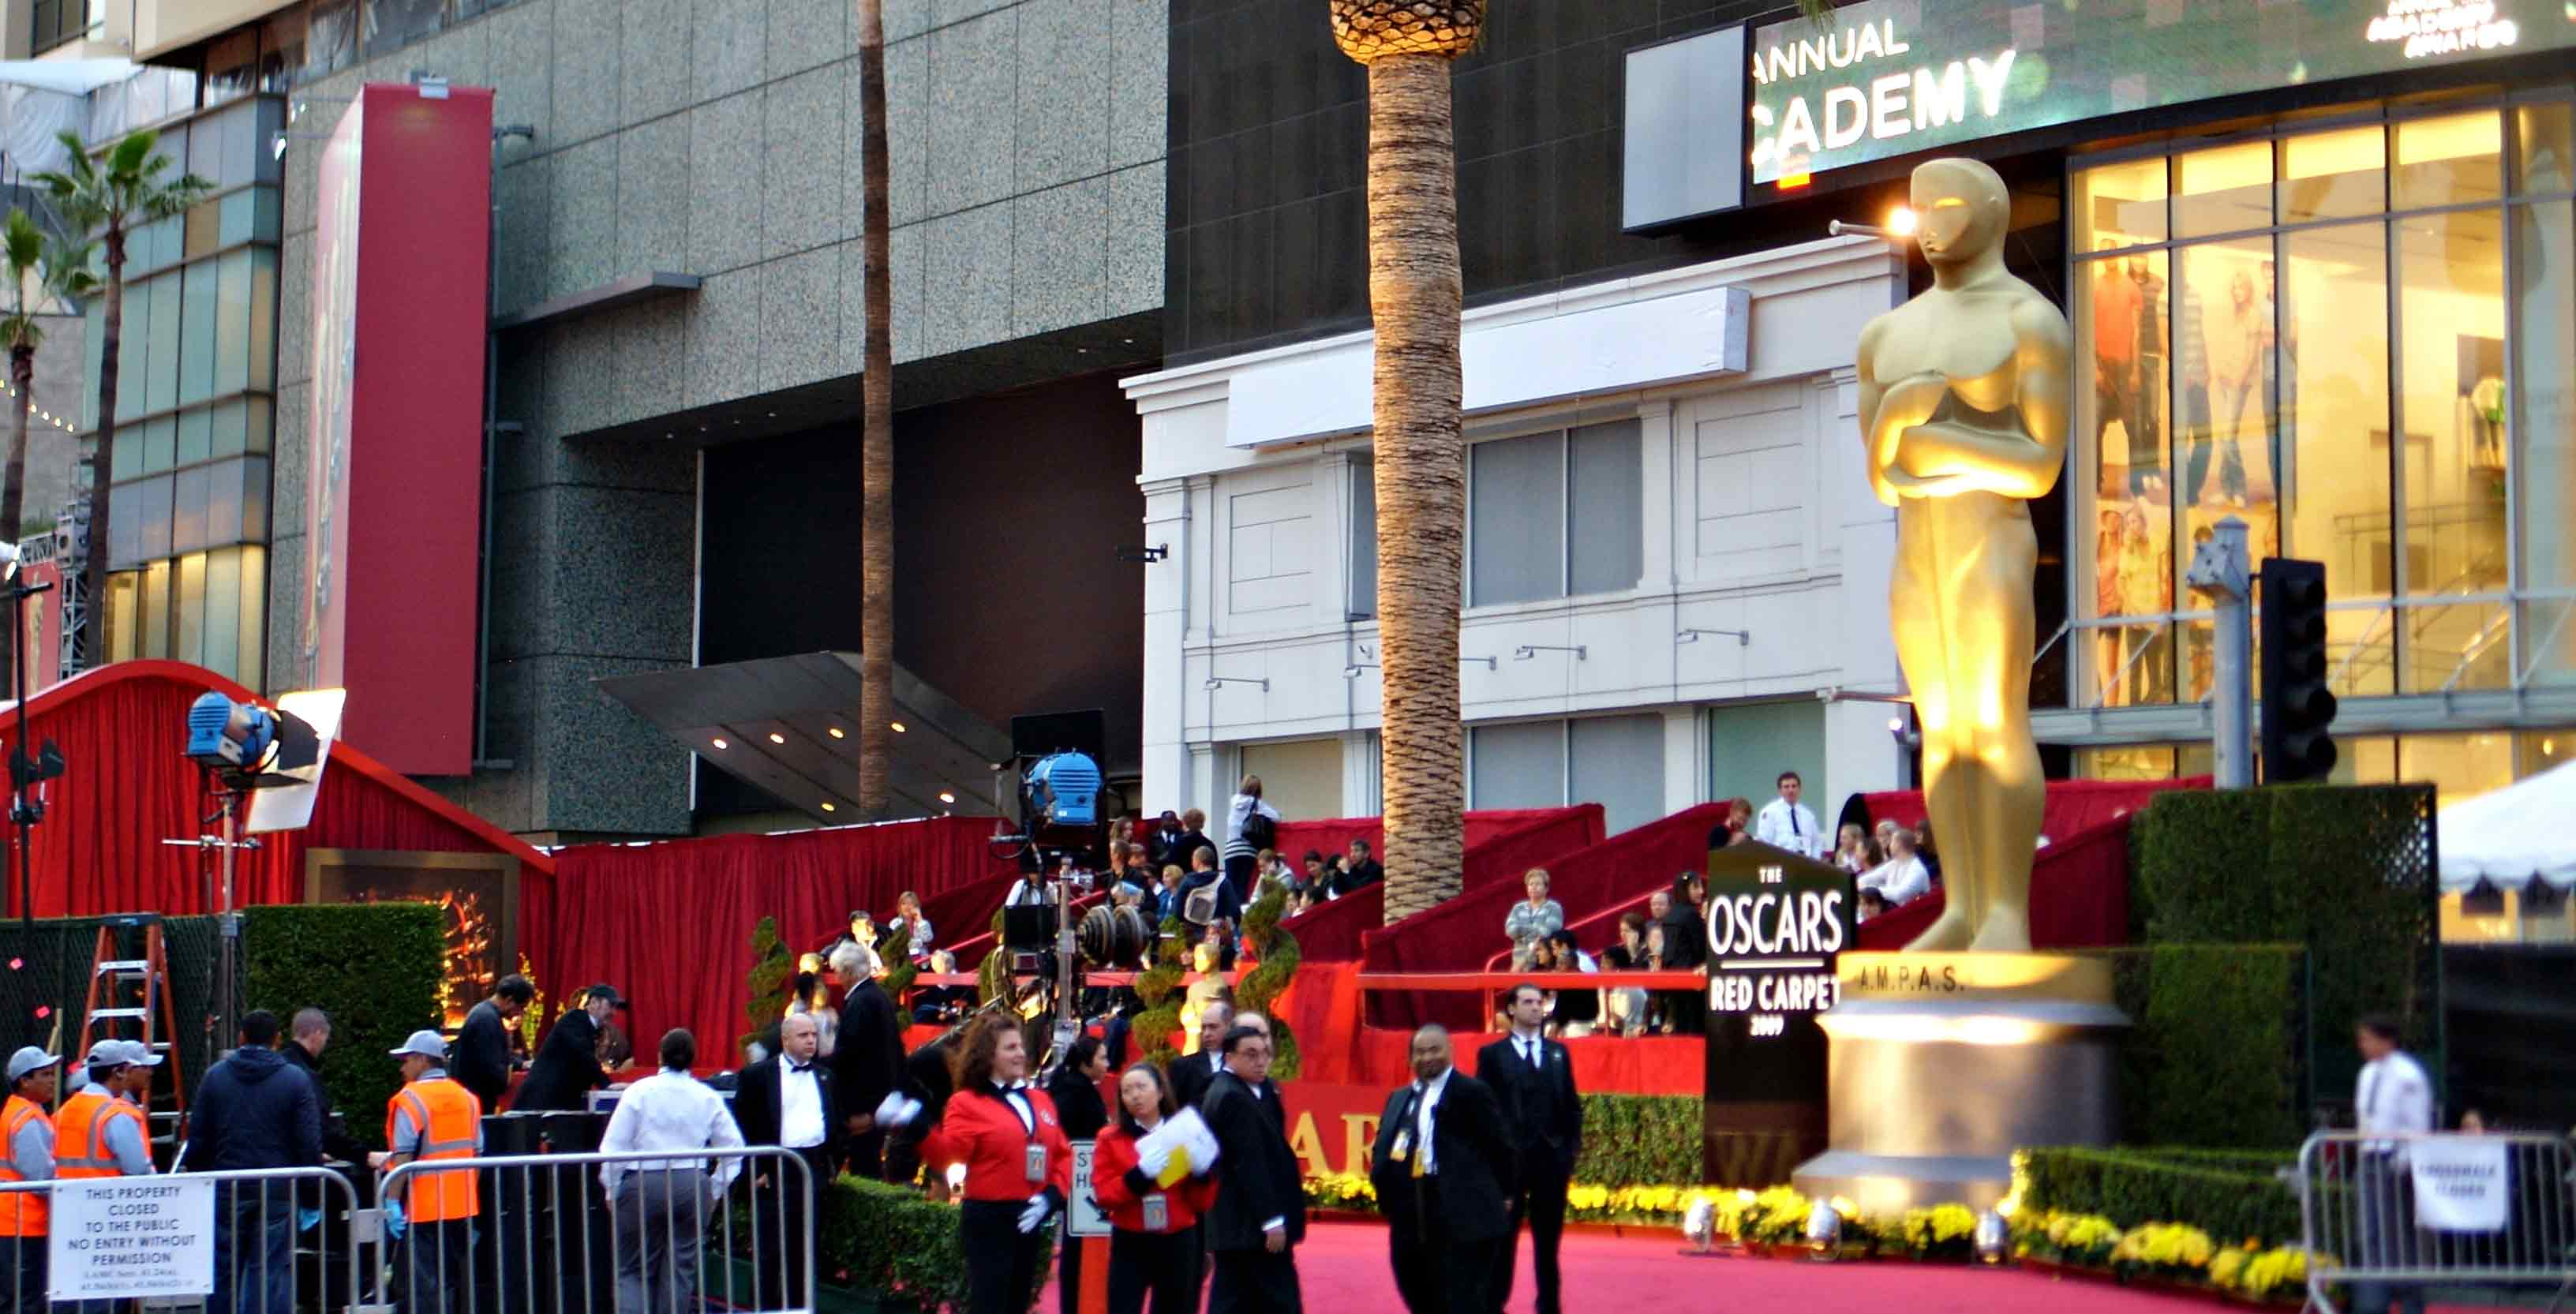 Photograph from the Oscars